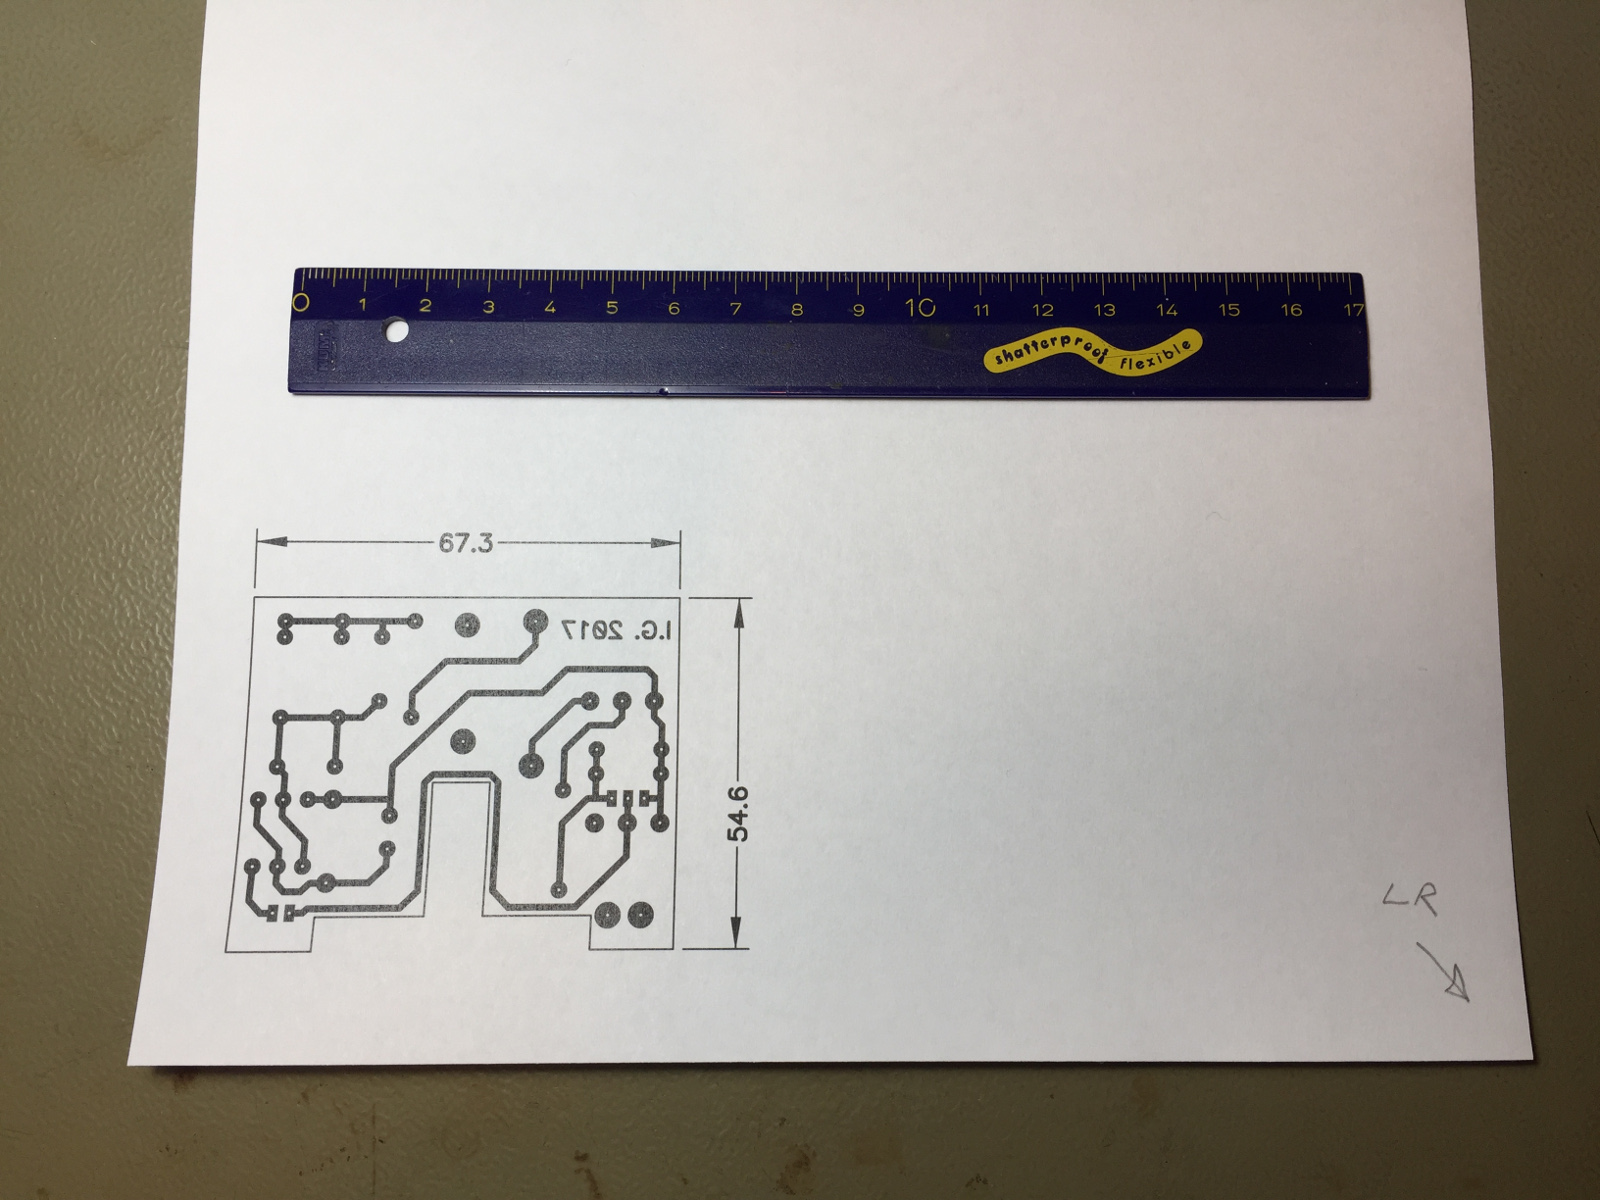 Etching Printed Circuits Boards At Home Design Tools Give Engineers An Edge In Online Circuit Board Test Print On A Blank A4 Sheet The Hand Drawn Arrow Right